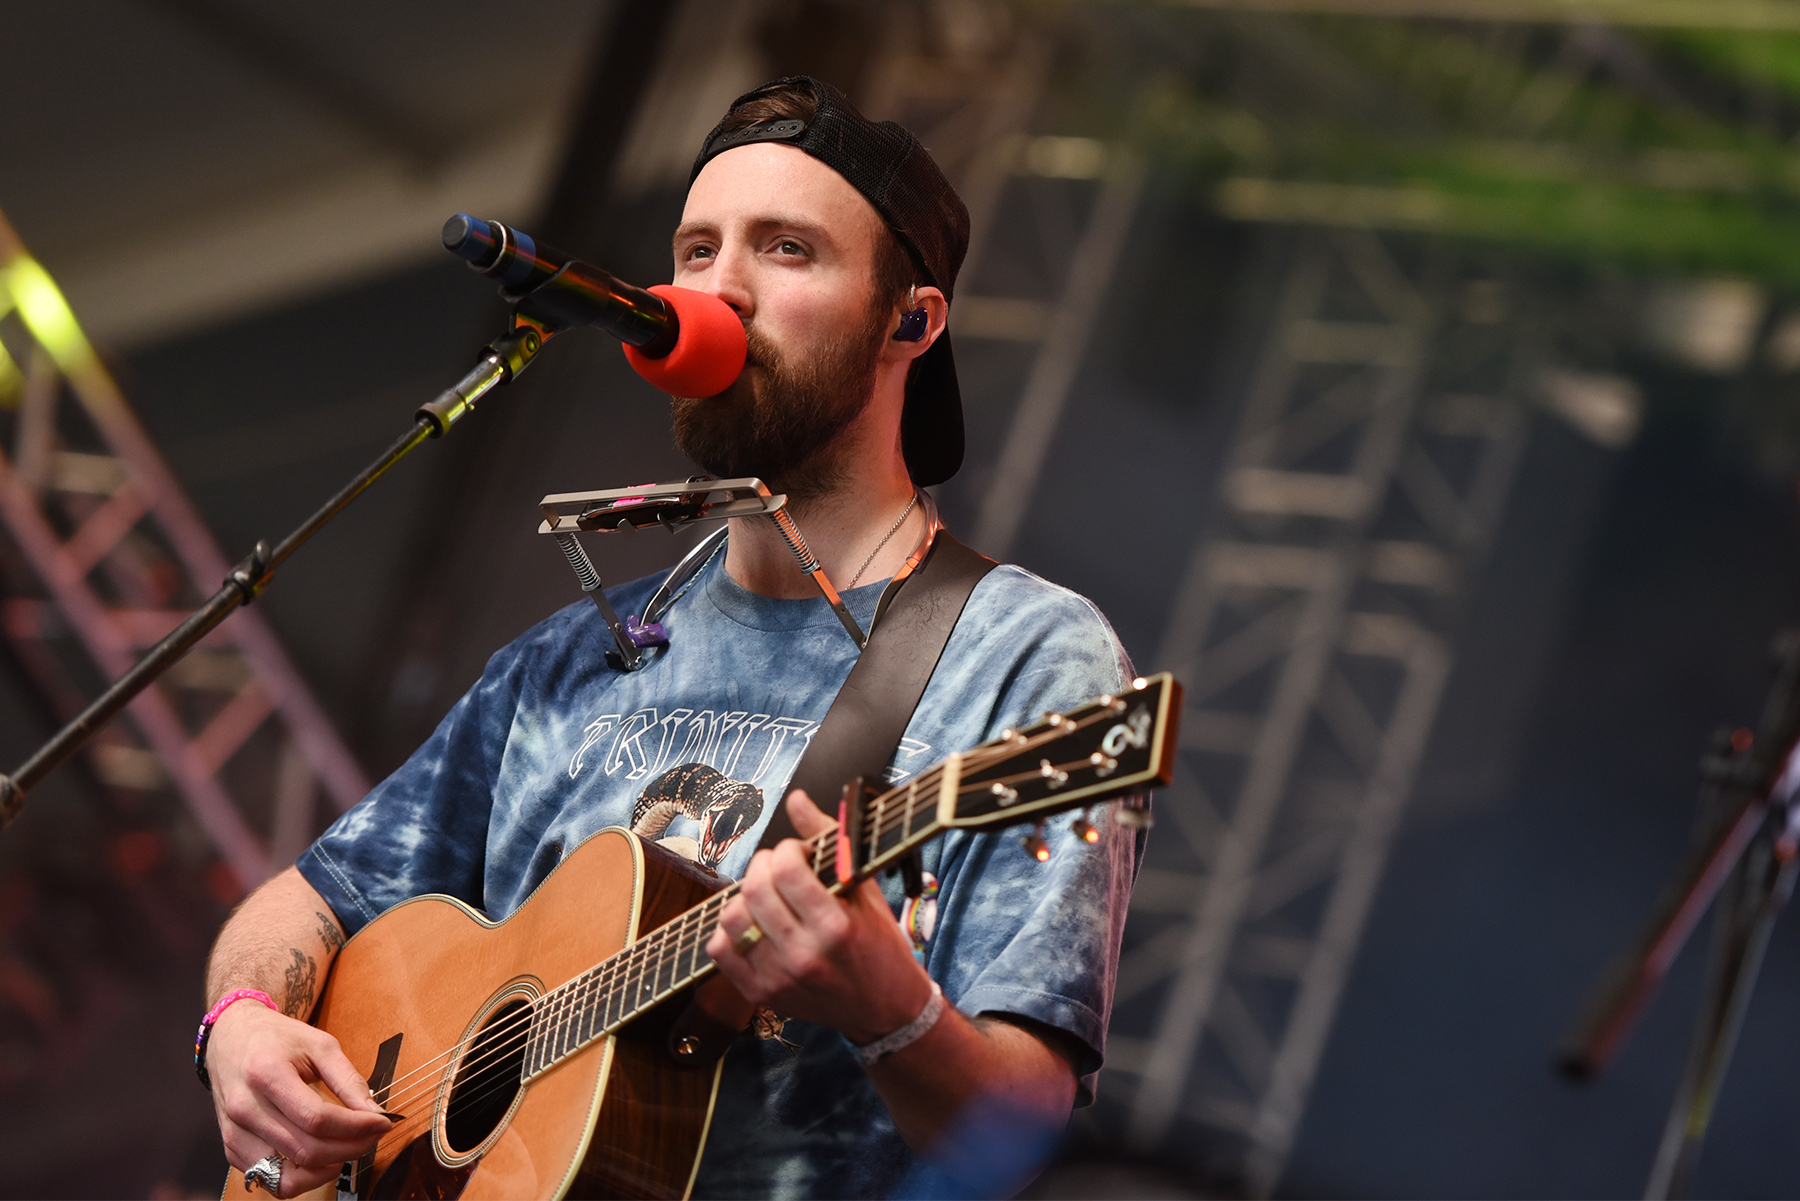 Ruston Kelly_02web.jpg